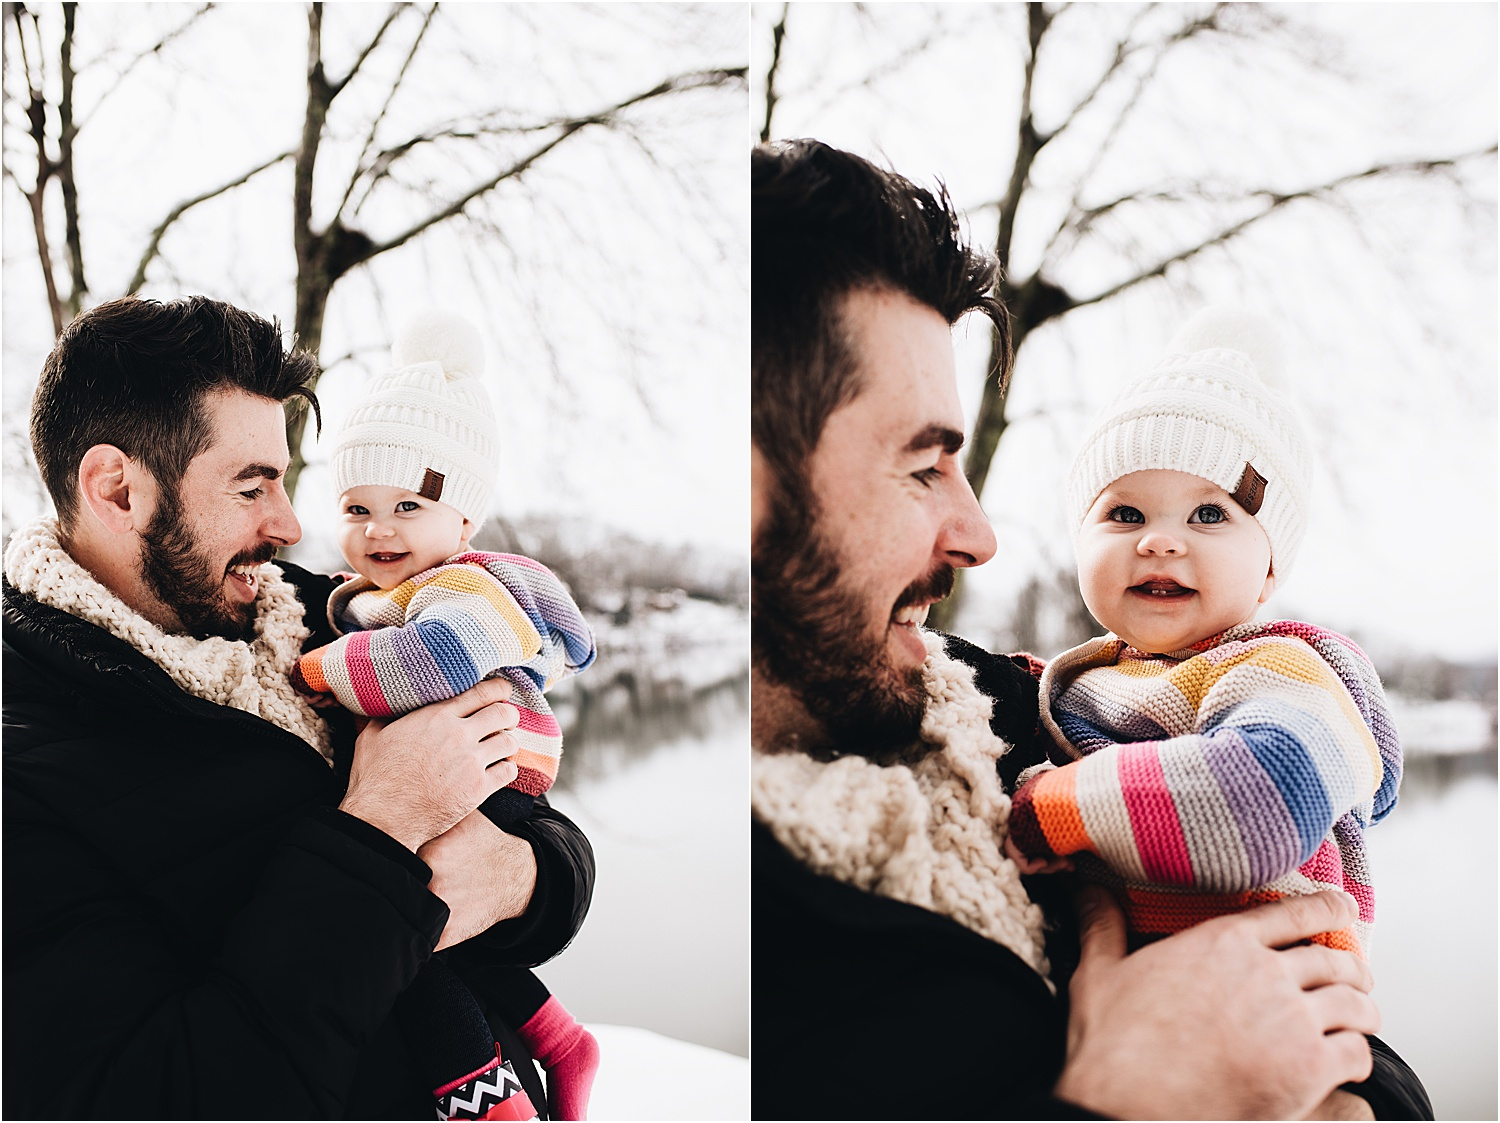 Lifestyle family photos in the snow